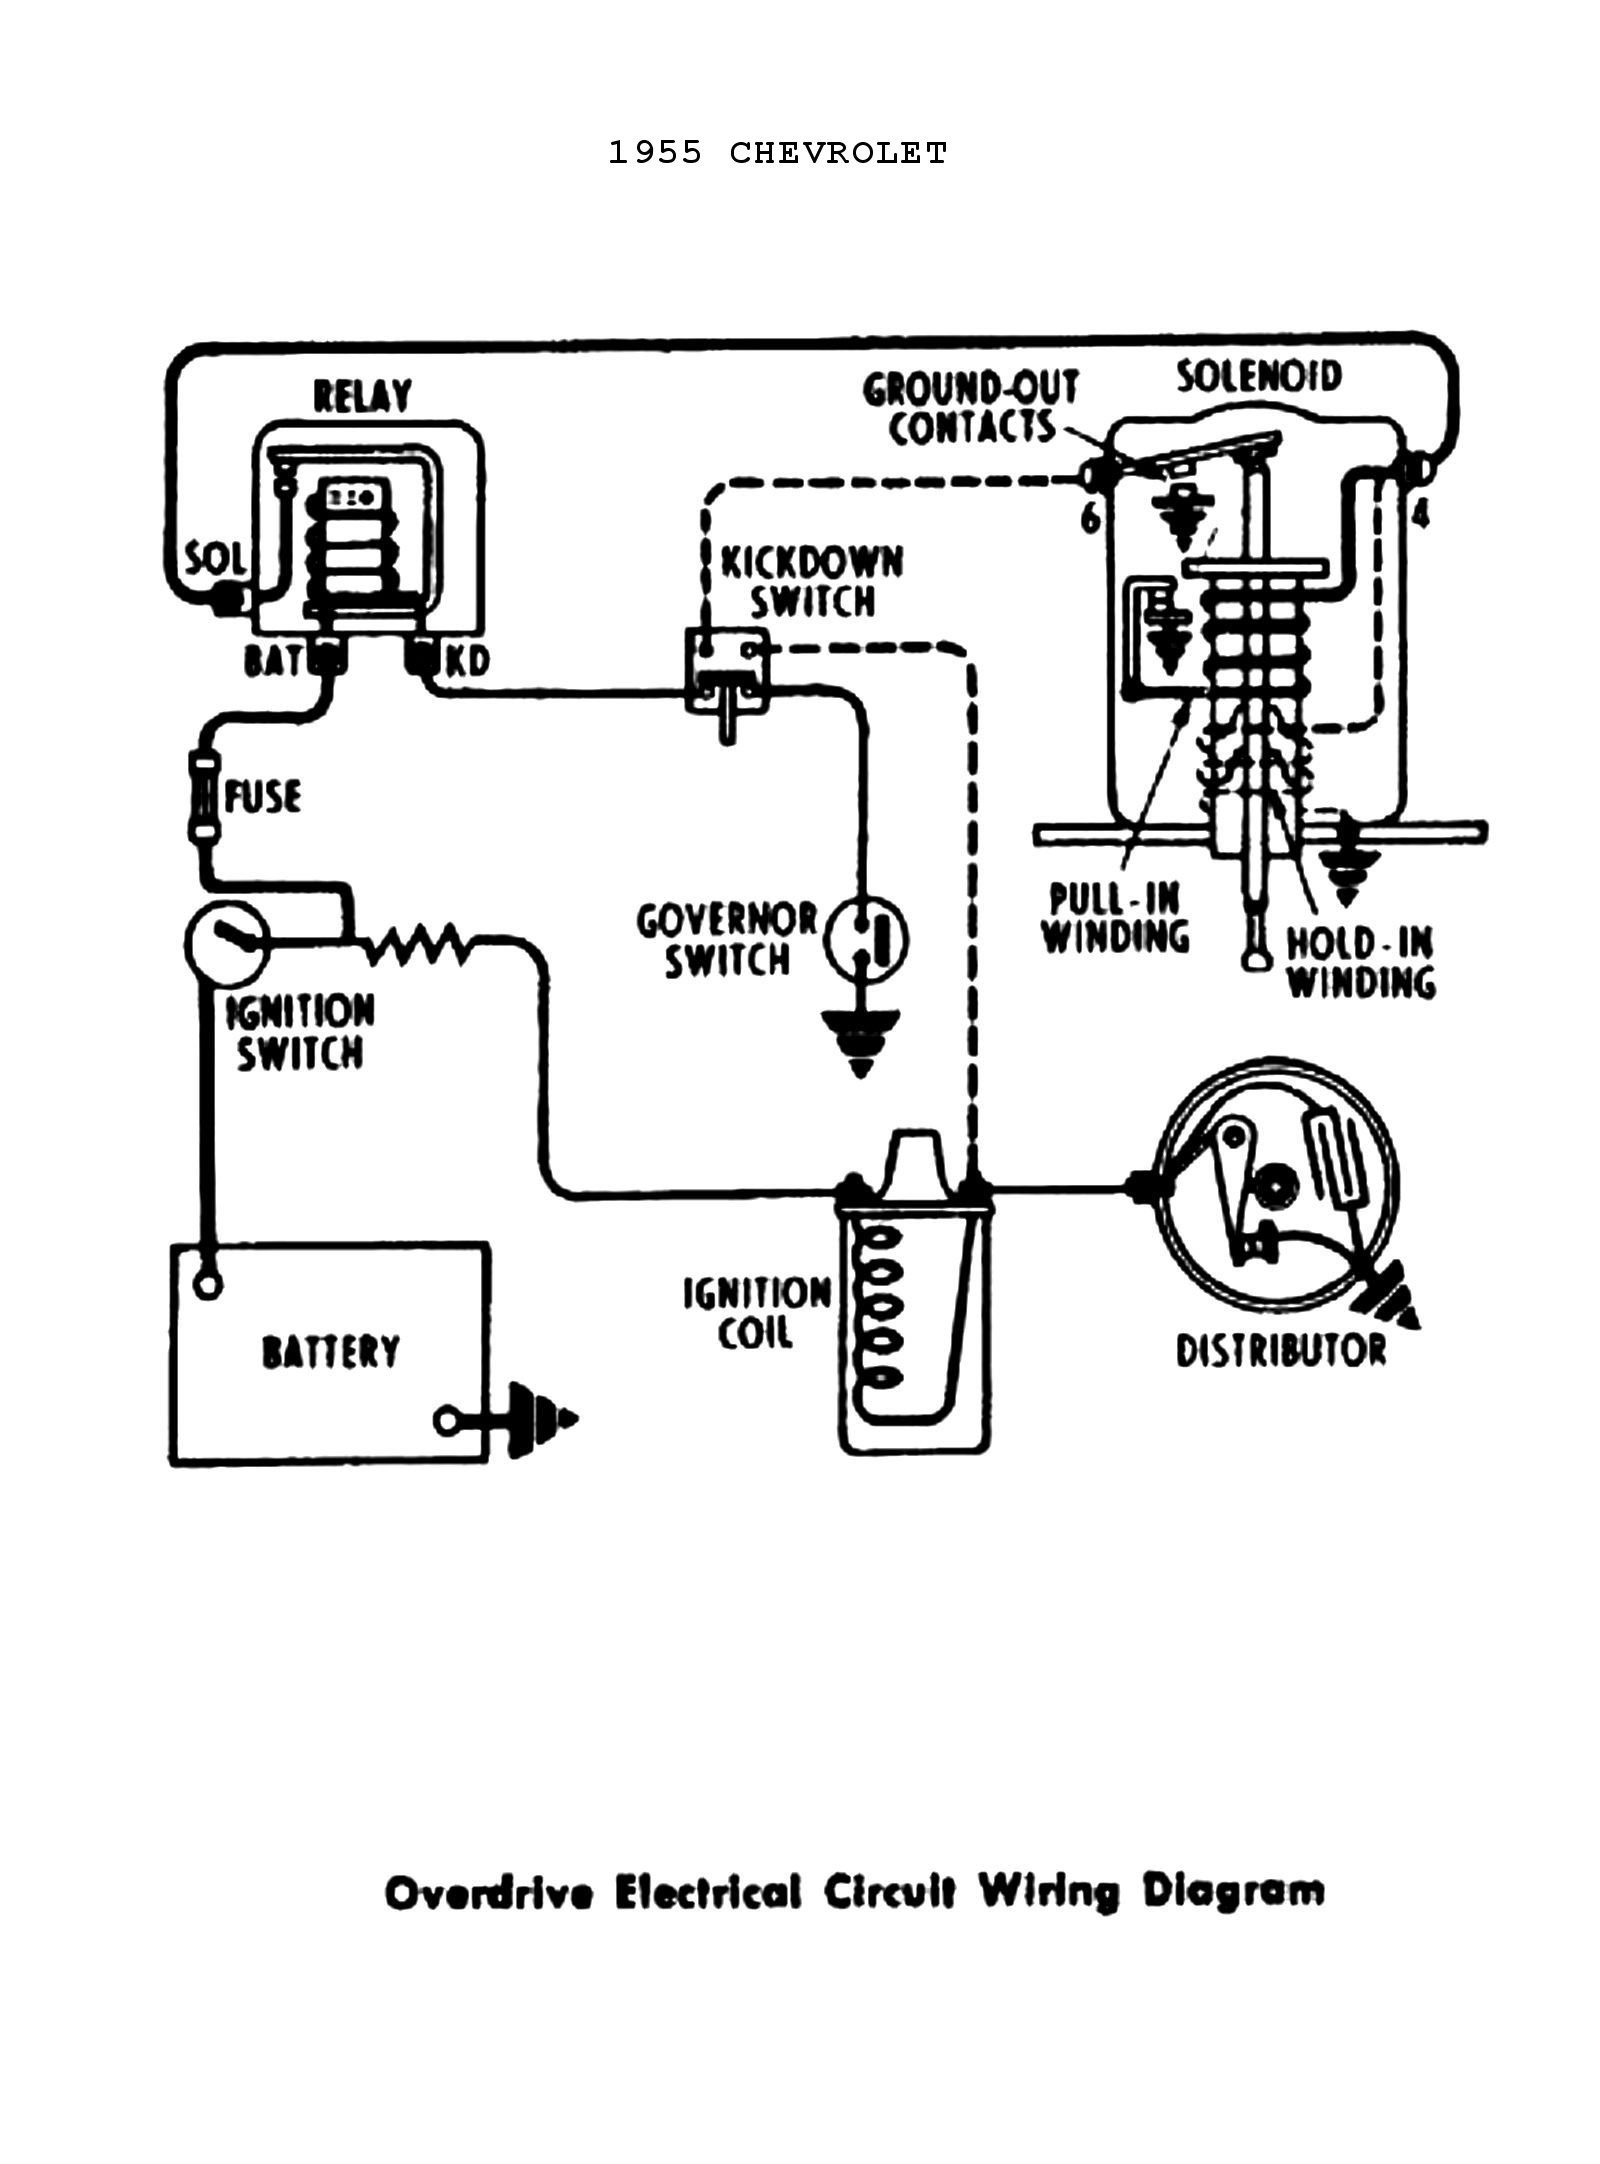 chevy 350 ignition coil wiring diagram Collection-chevy ignition coil wiring diagram 18-e